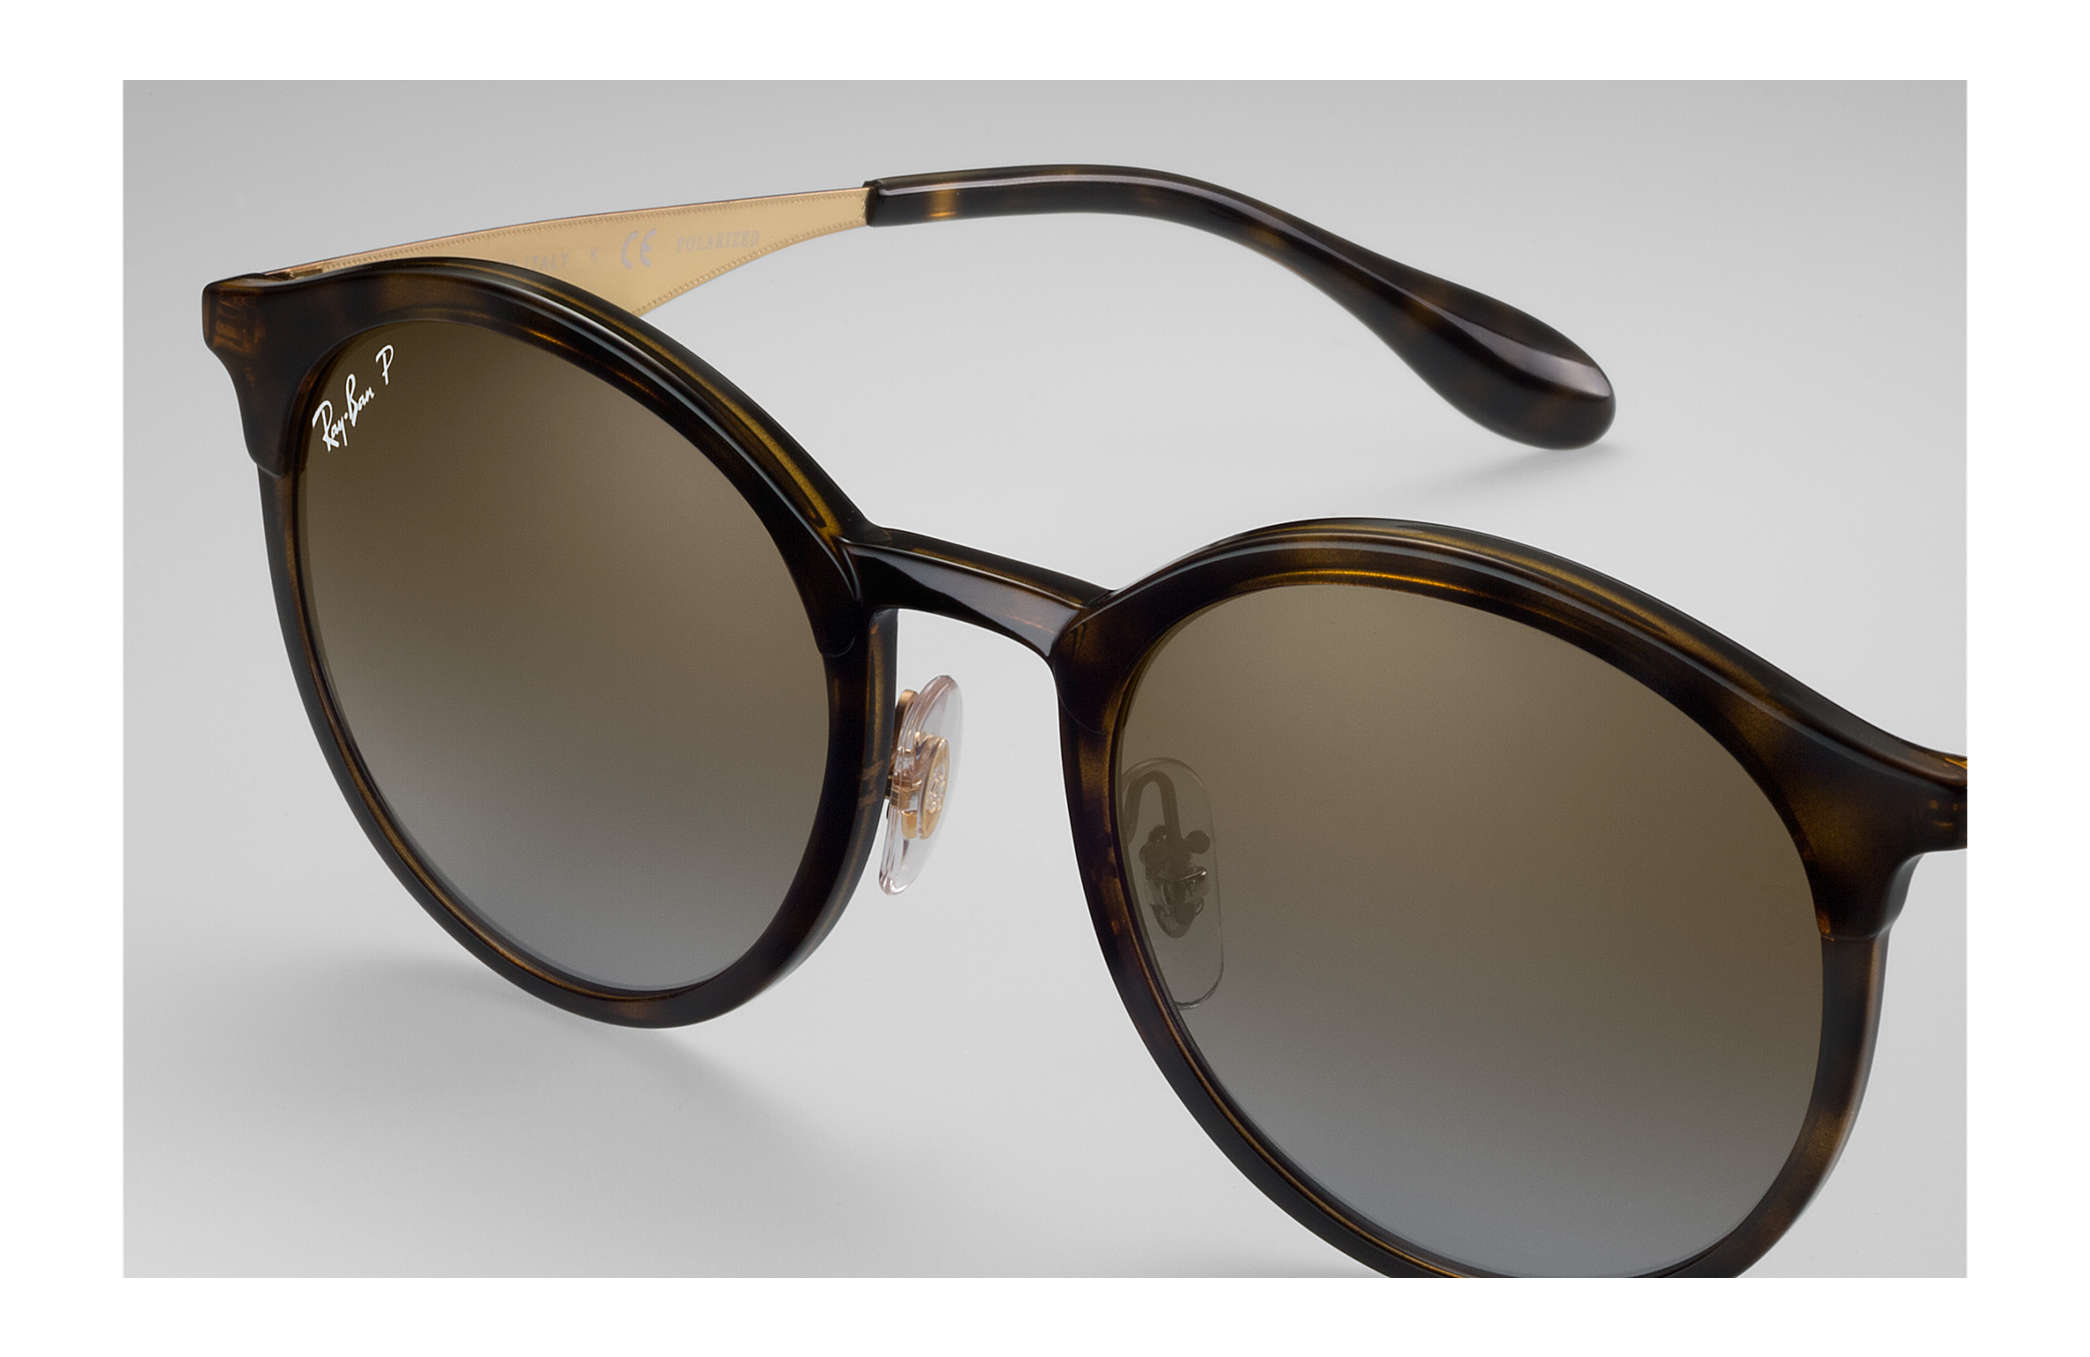 056a8f1f38d06 Ray-Ban Emma RB4277 Tortoise - Injected - Brown Polarized Lenses ...